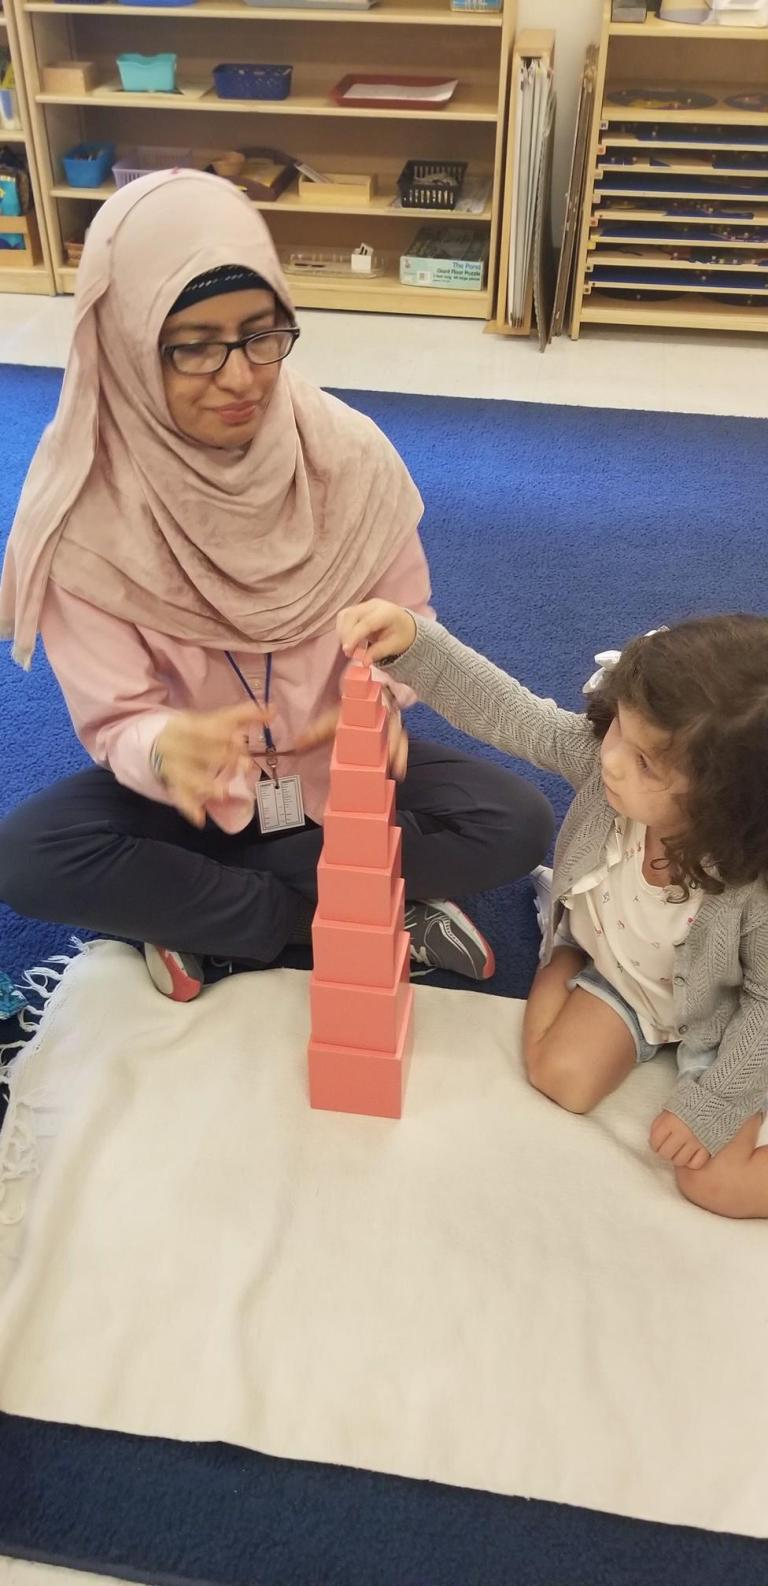 A teacher working with a student at Children's House Montessori School of Reston